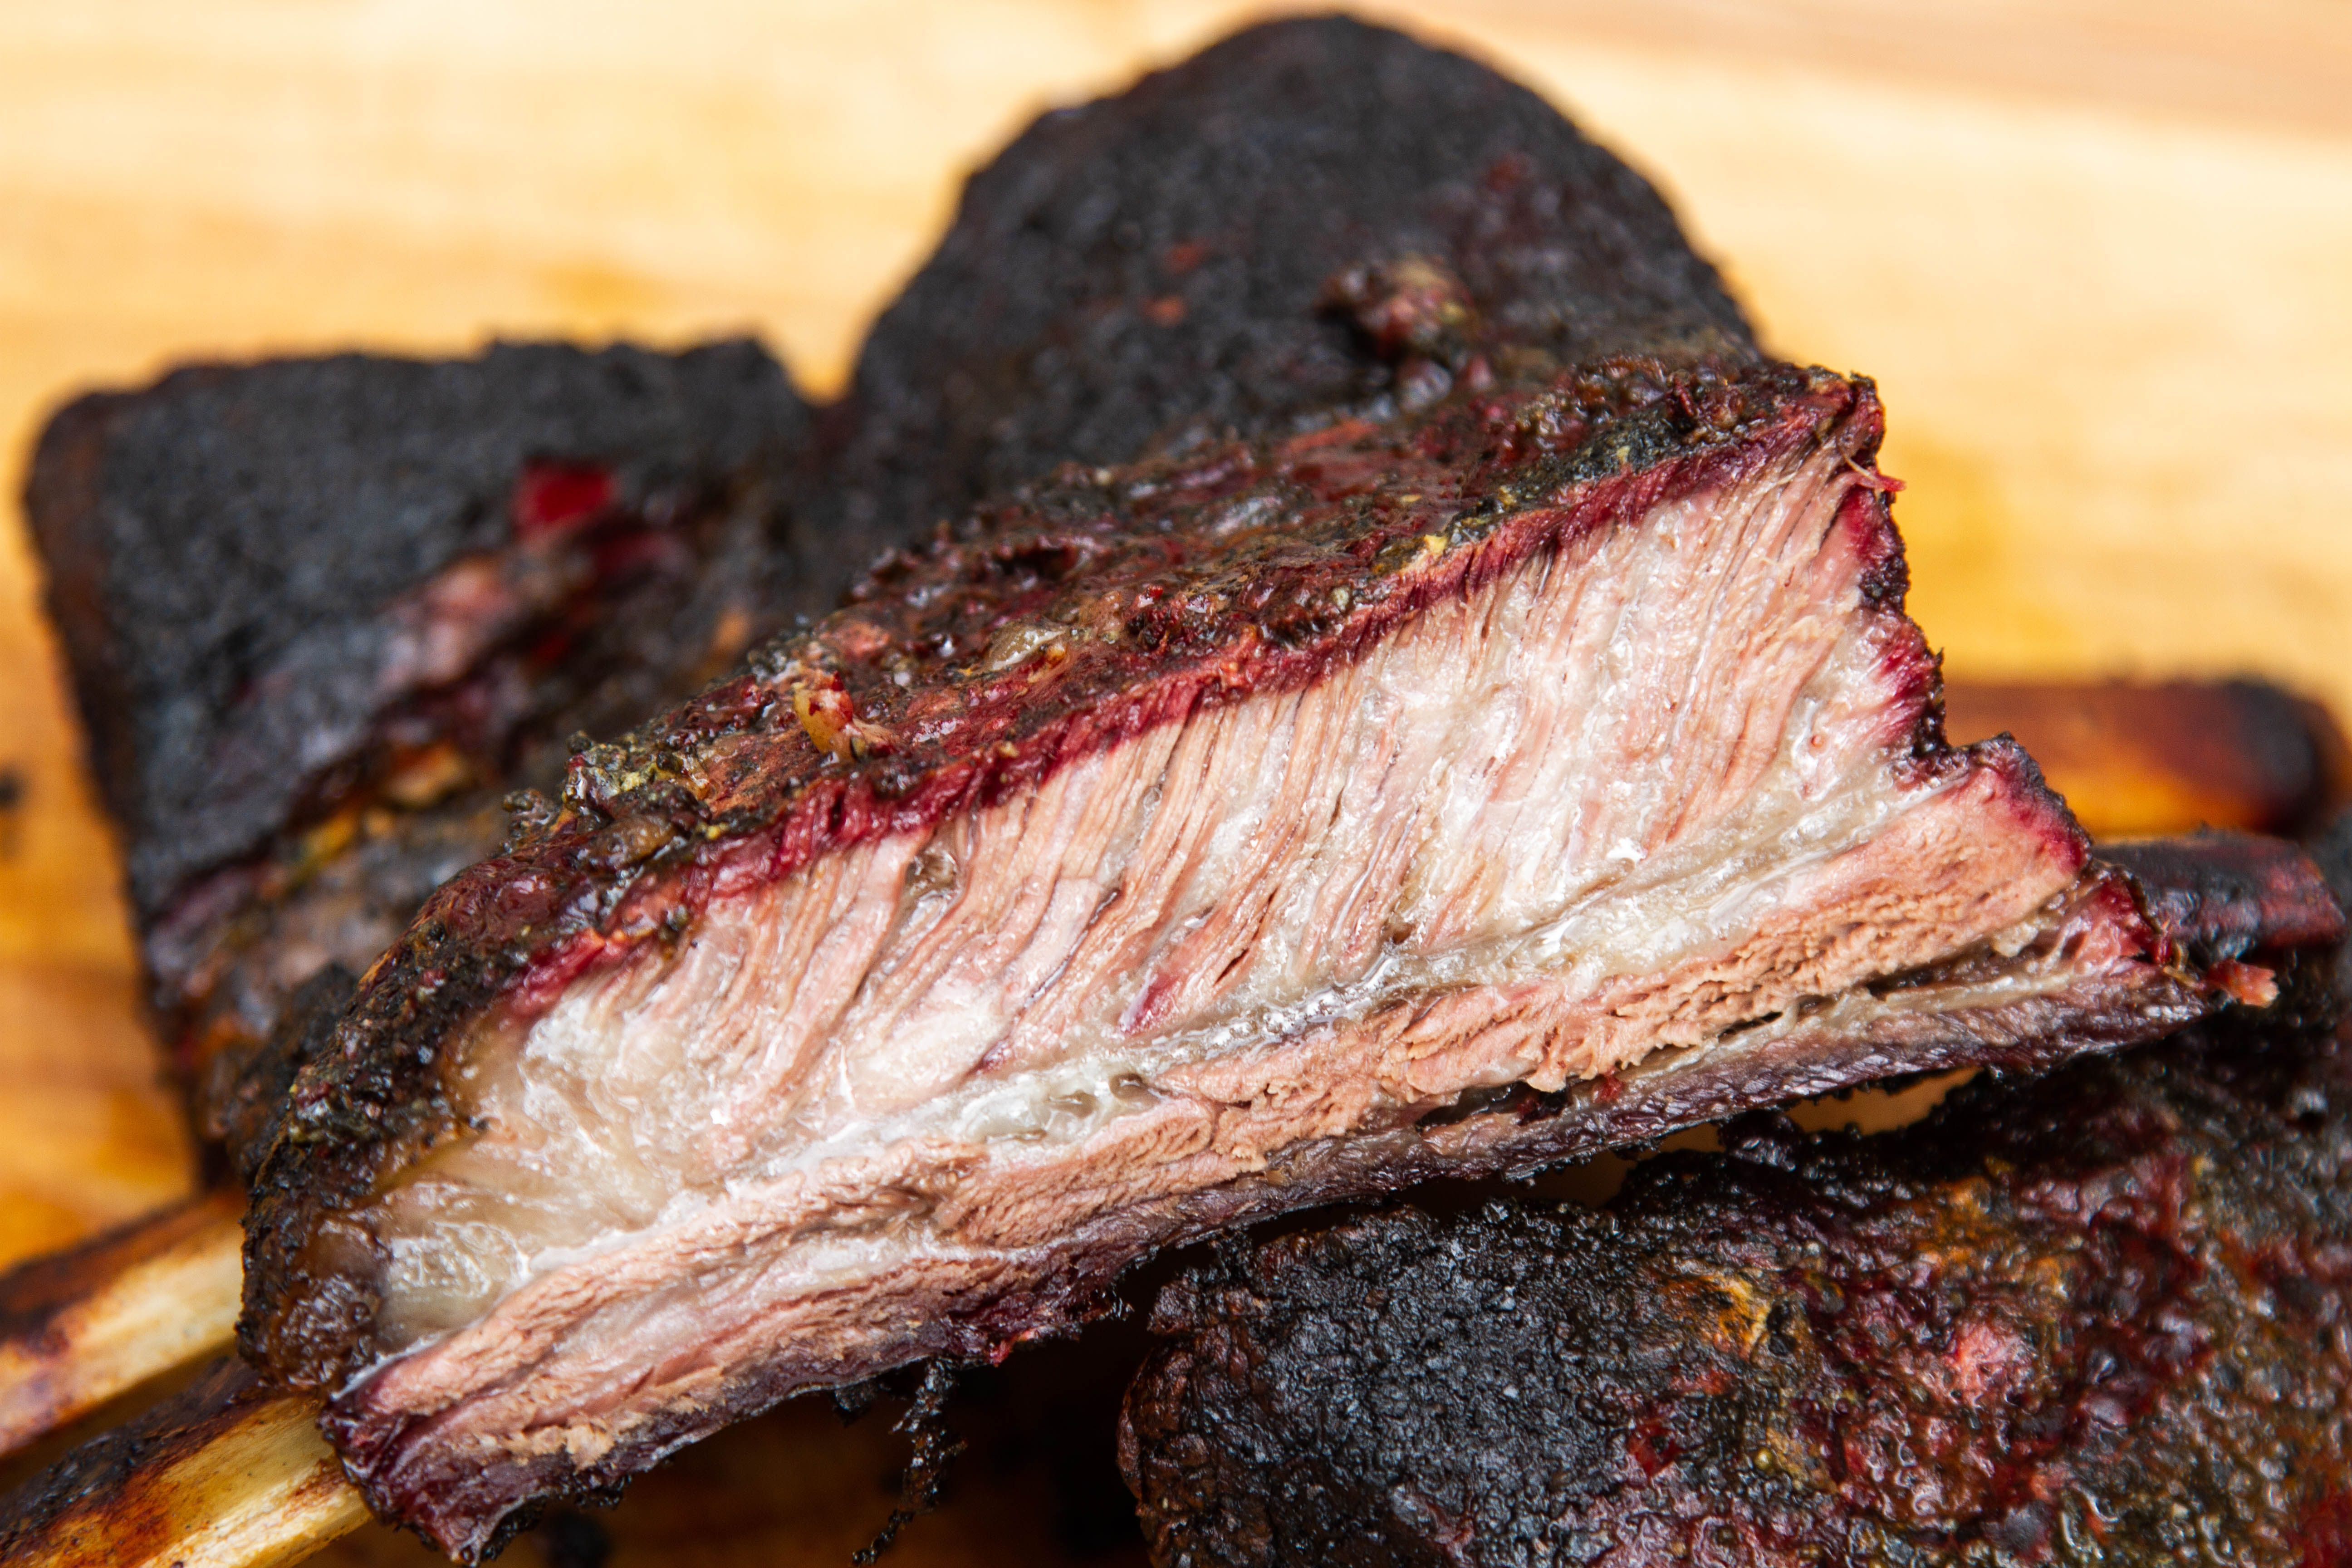 Smoked Beef Dino Ribs Learn To Smoke Meat With Jeff Phillips Recipe Smoked Food Recipes Smoked Beef Rib Recipes